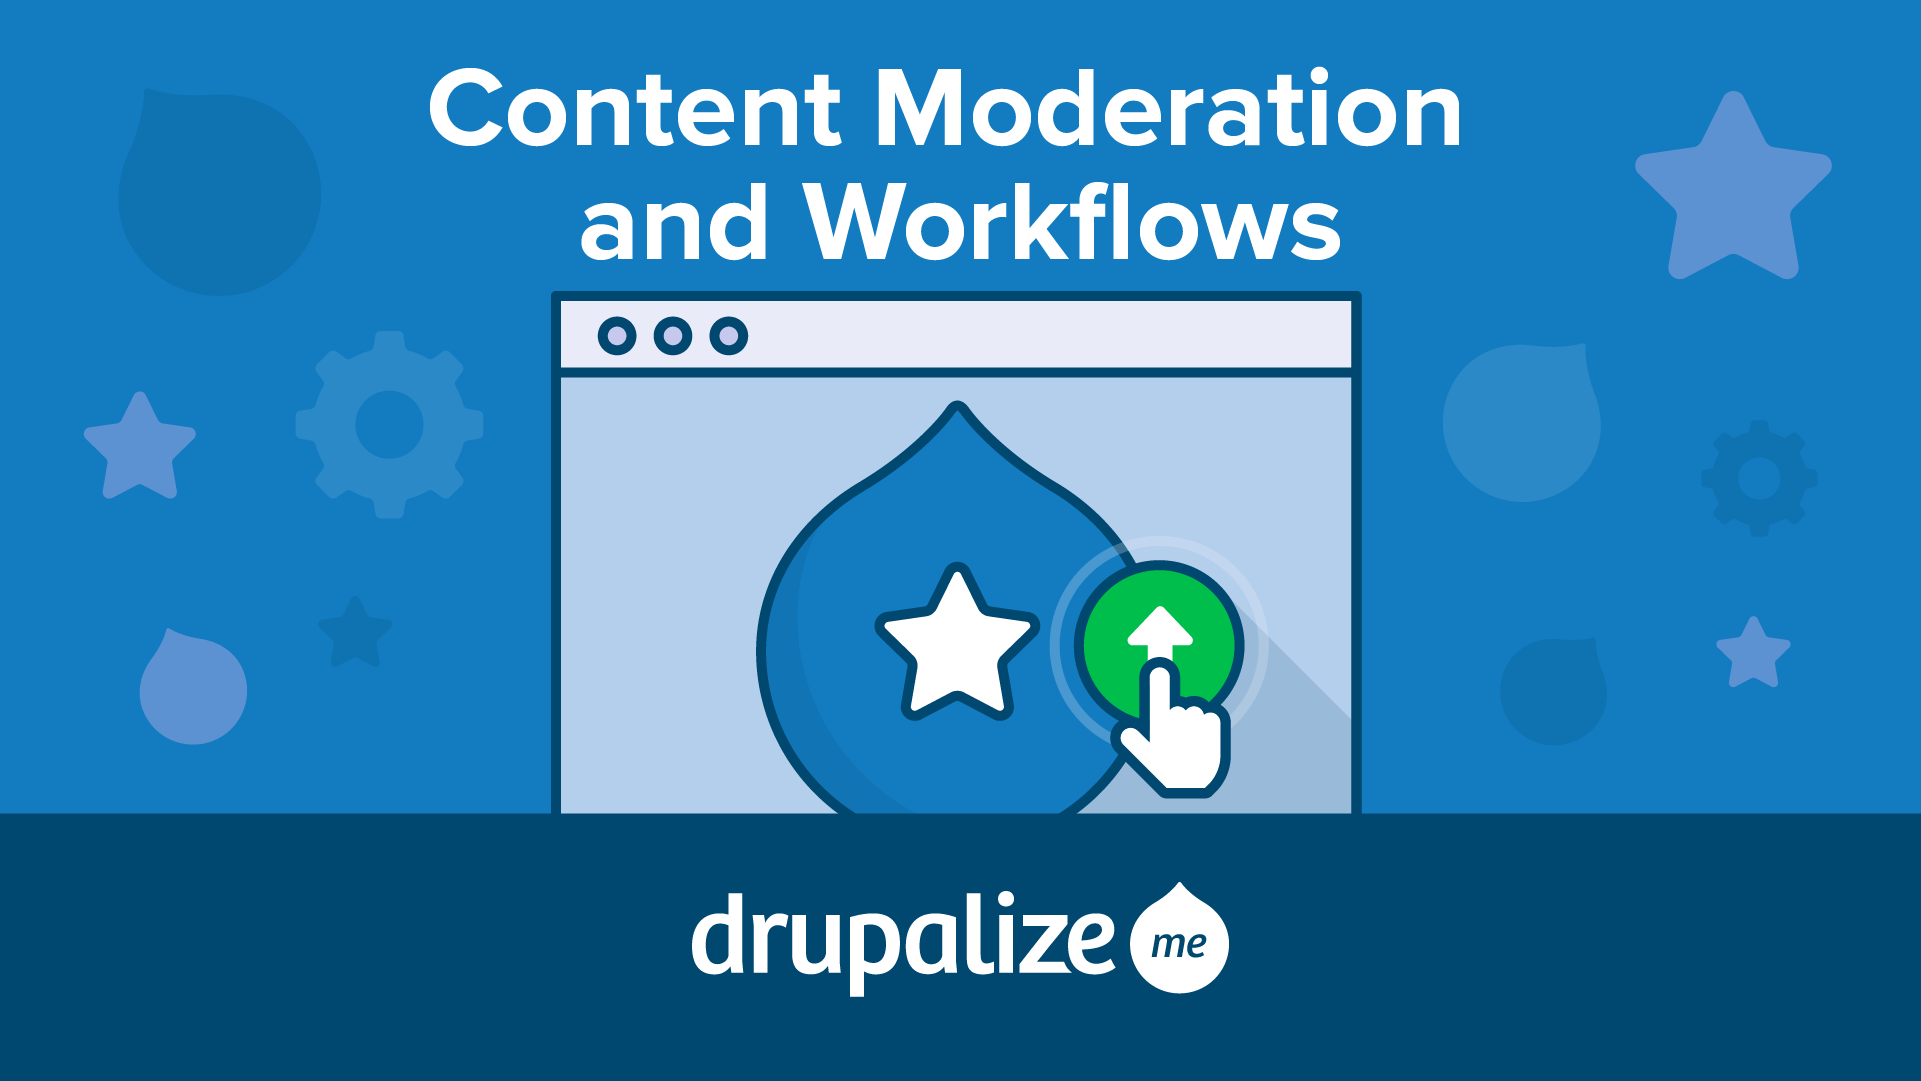 Content Moderation and Workflows